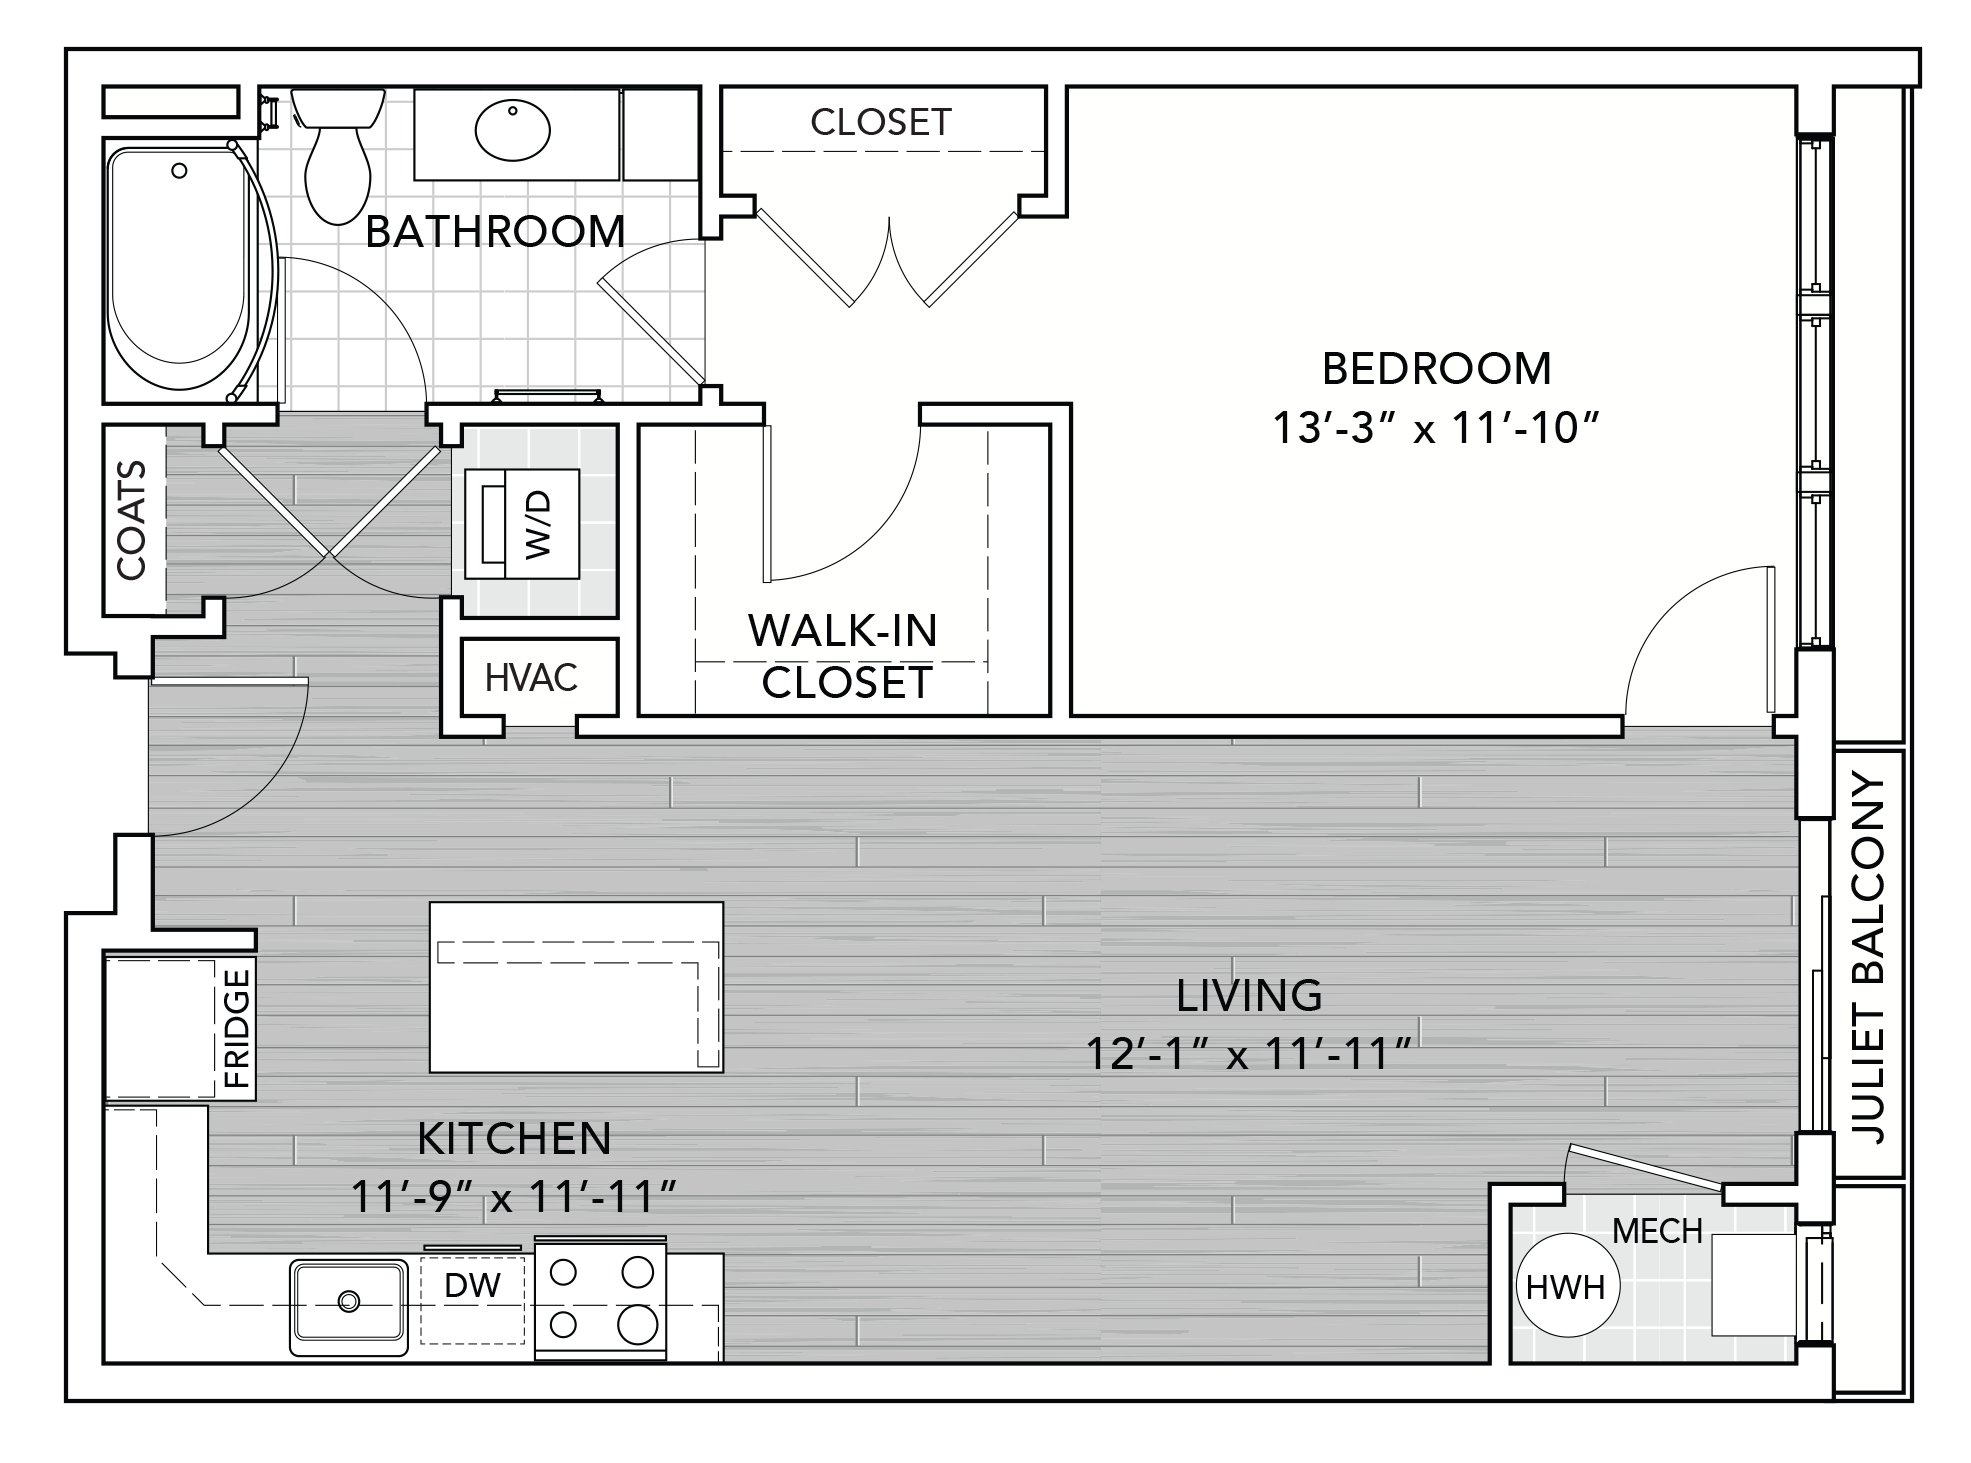 P0655013 parksquare a5 825 2 floorplan